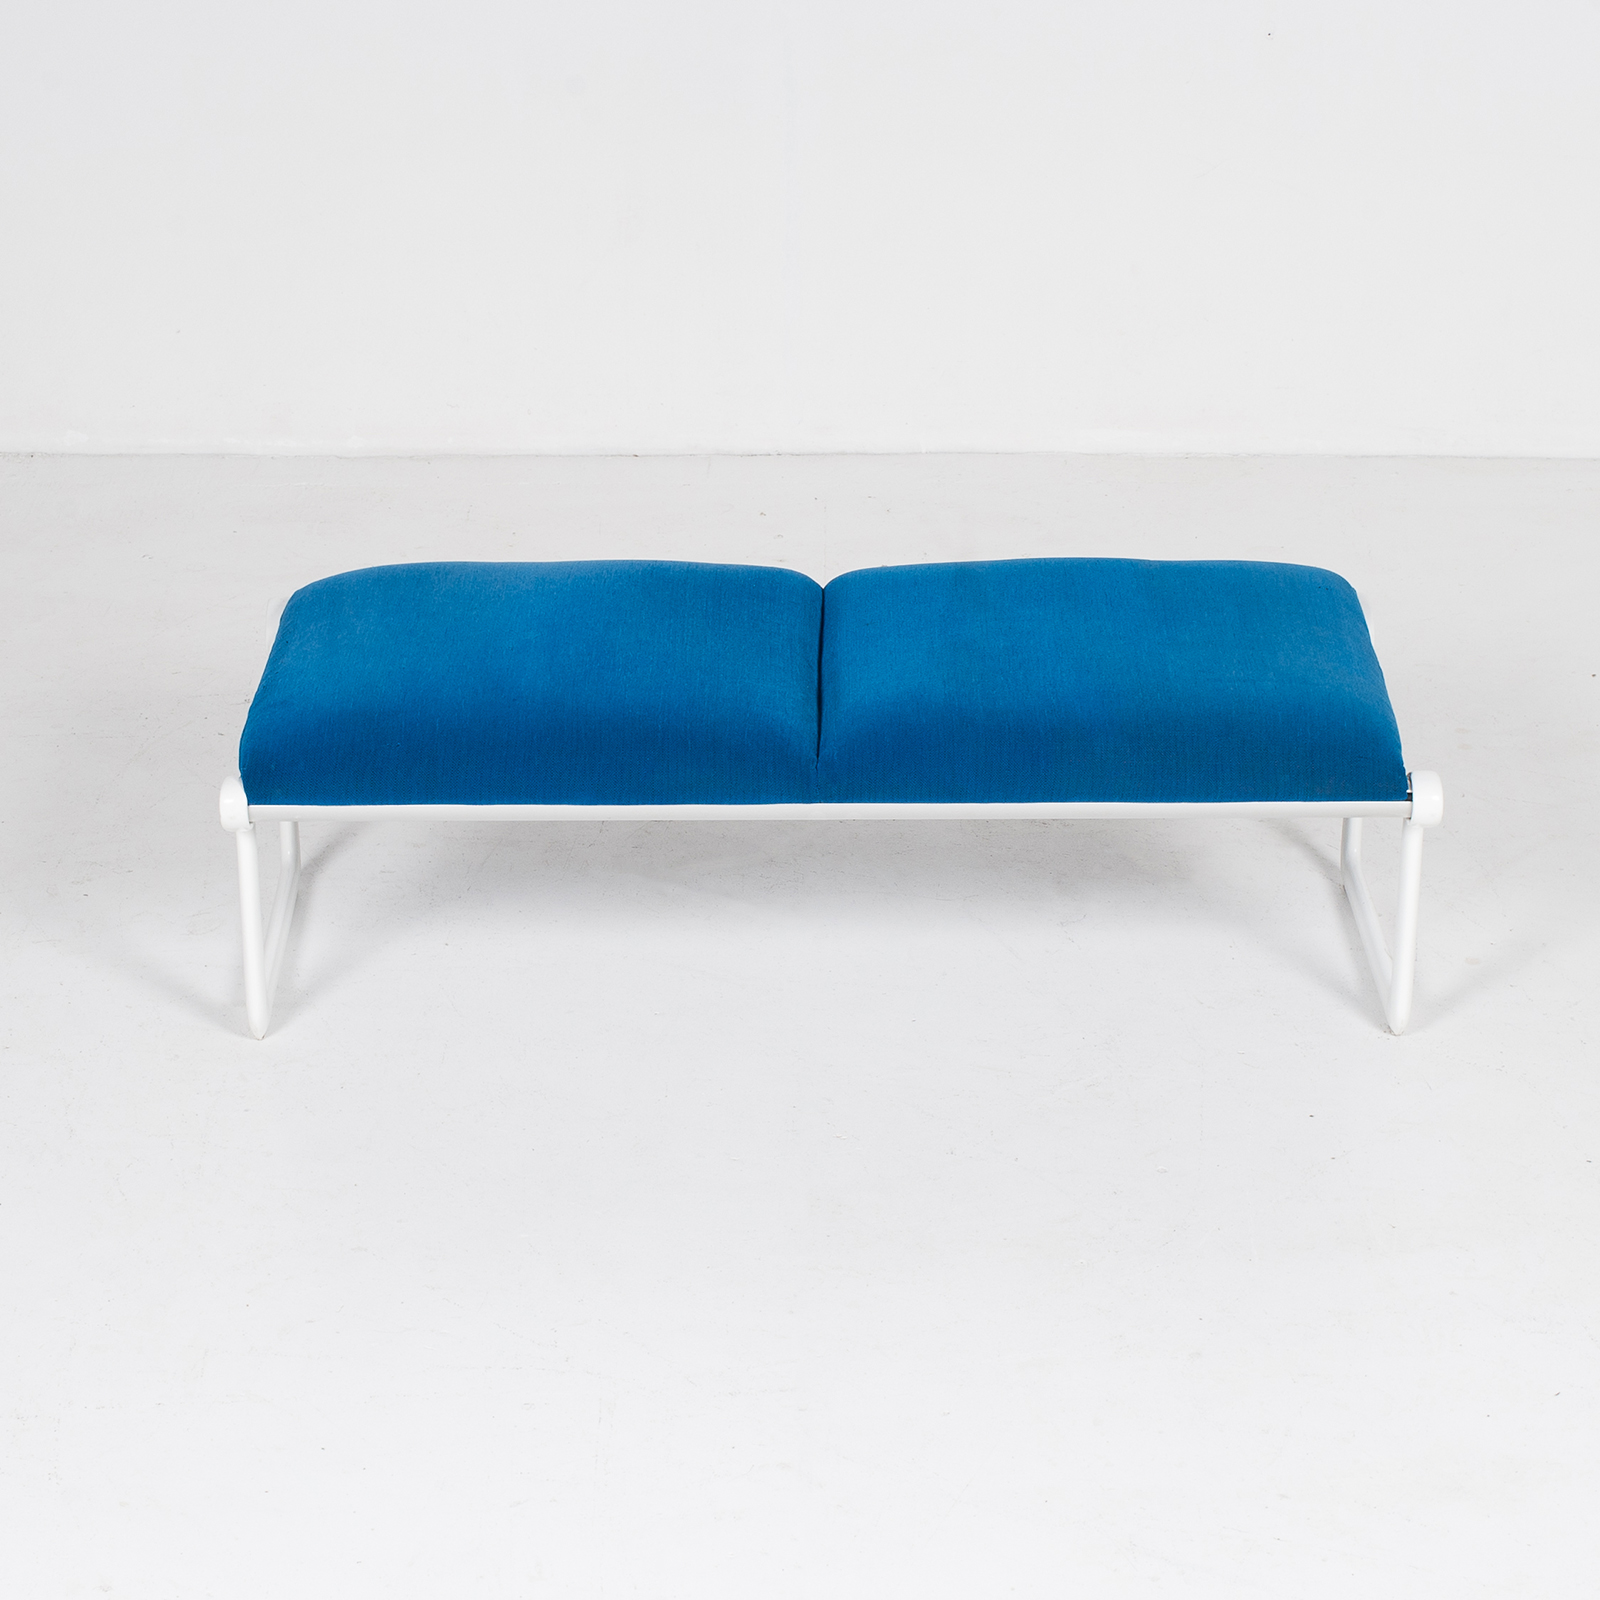 Bench By Bruce Hannah And Andrew Morrison For Knoll With Blue Upholstery, 1960s, United States 1